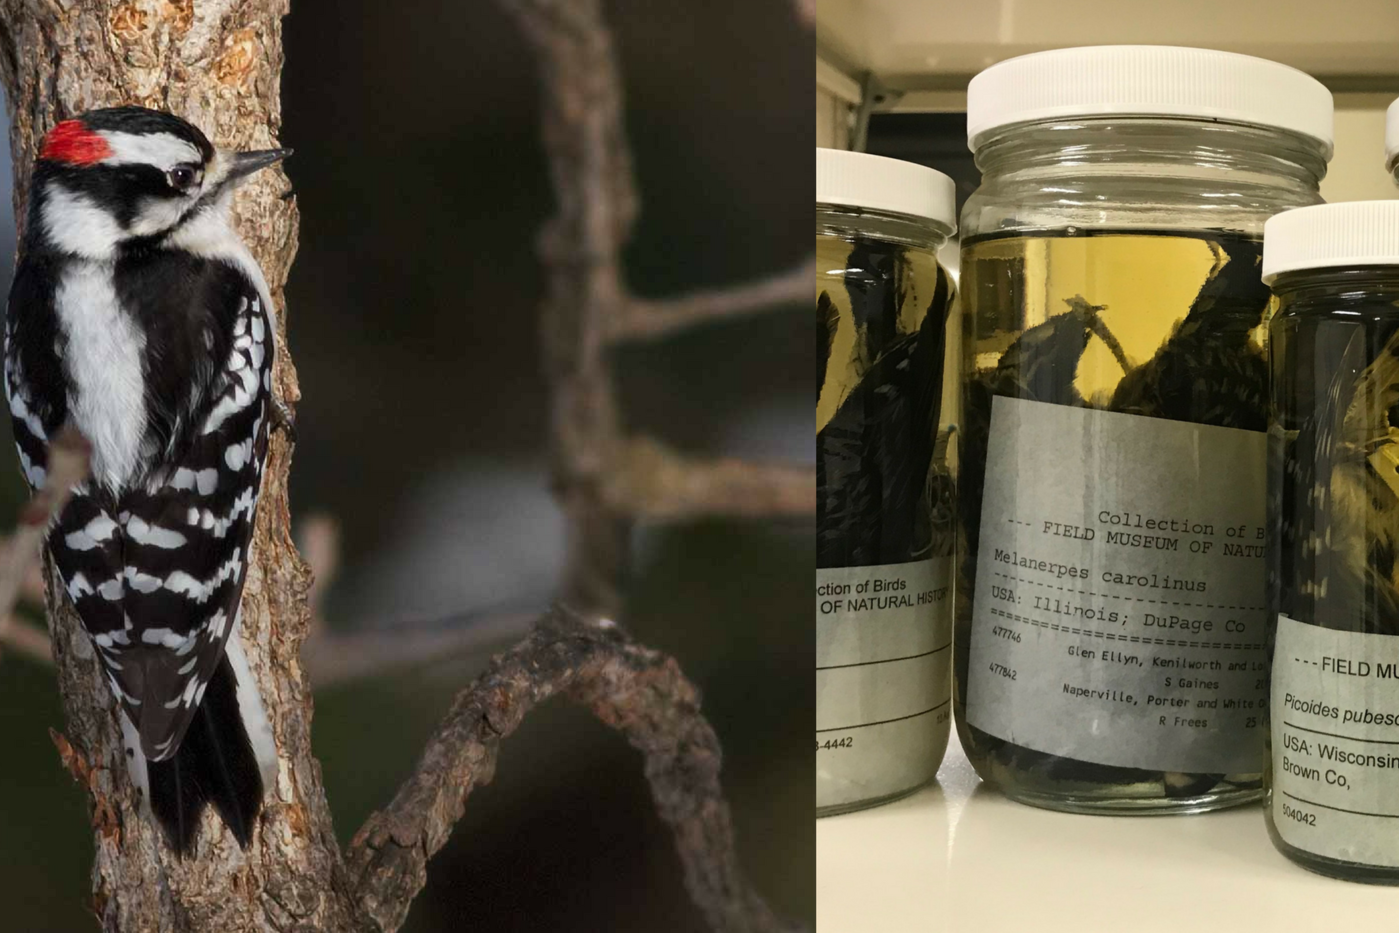 Two photos, one of a black and white bird with a red head on a tree; one of a row of jars of museum specimens